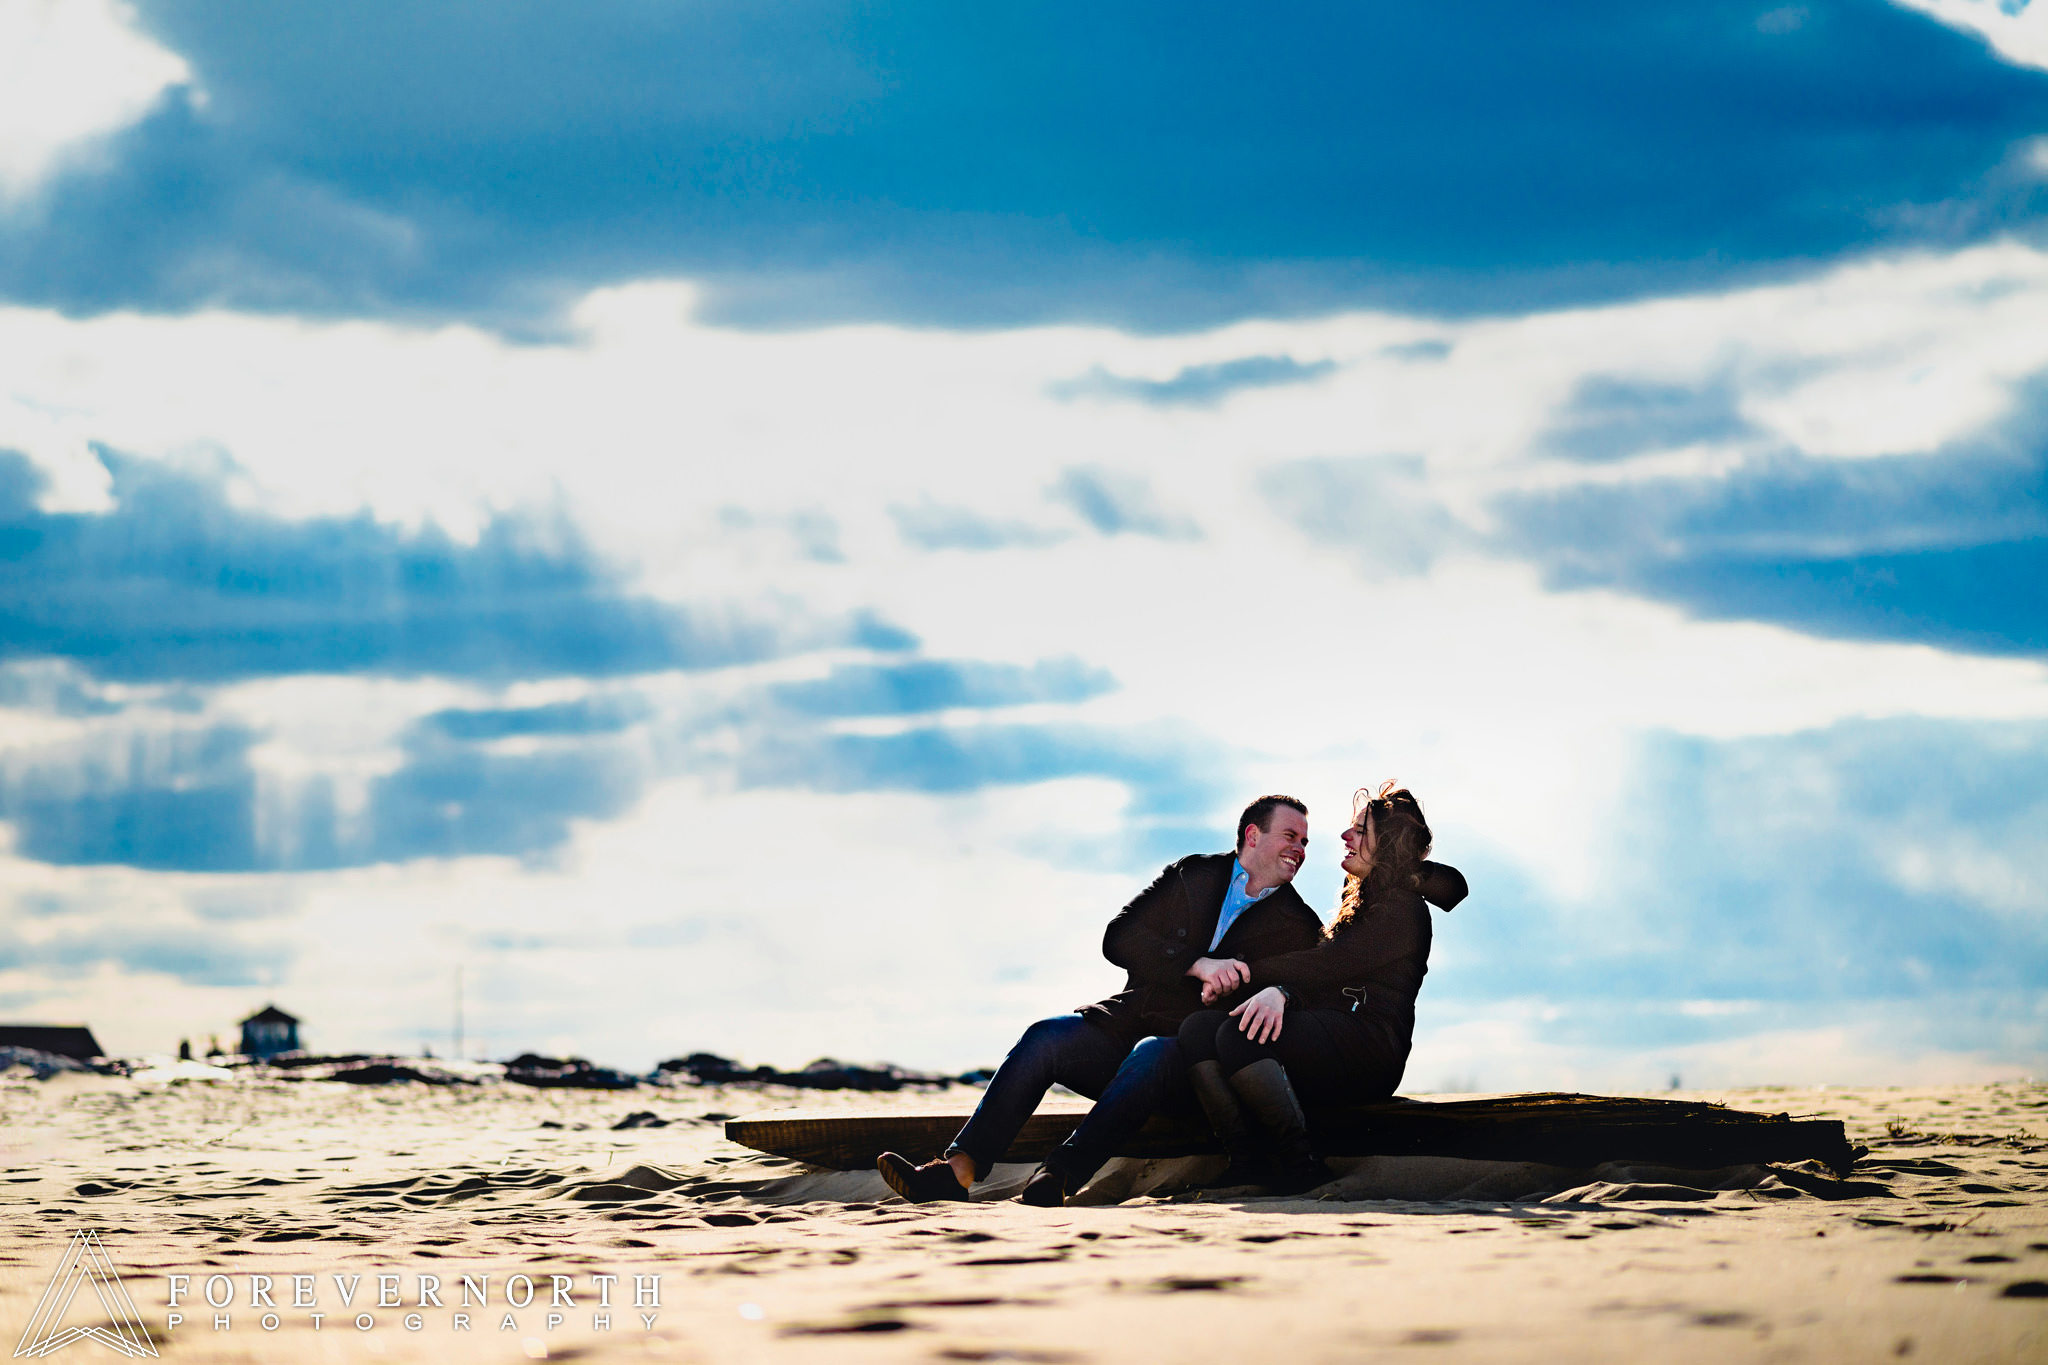 Schall-Forever-North-Photography-Proposal-Engagement-Photographer-Manasquan-Beach-39.JPG